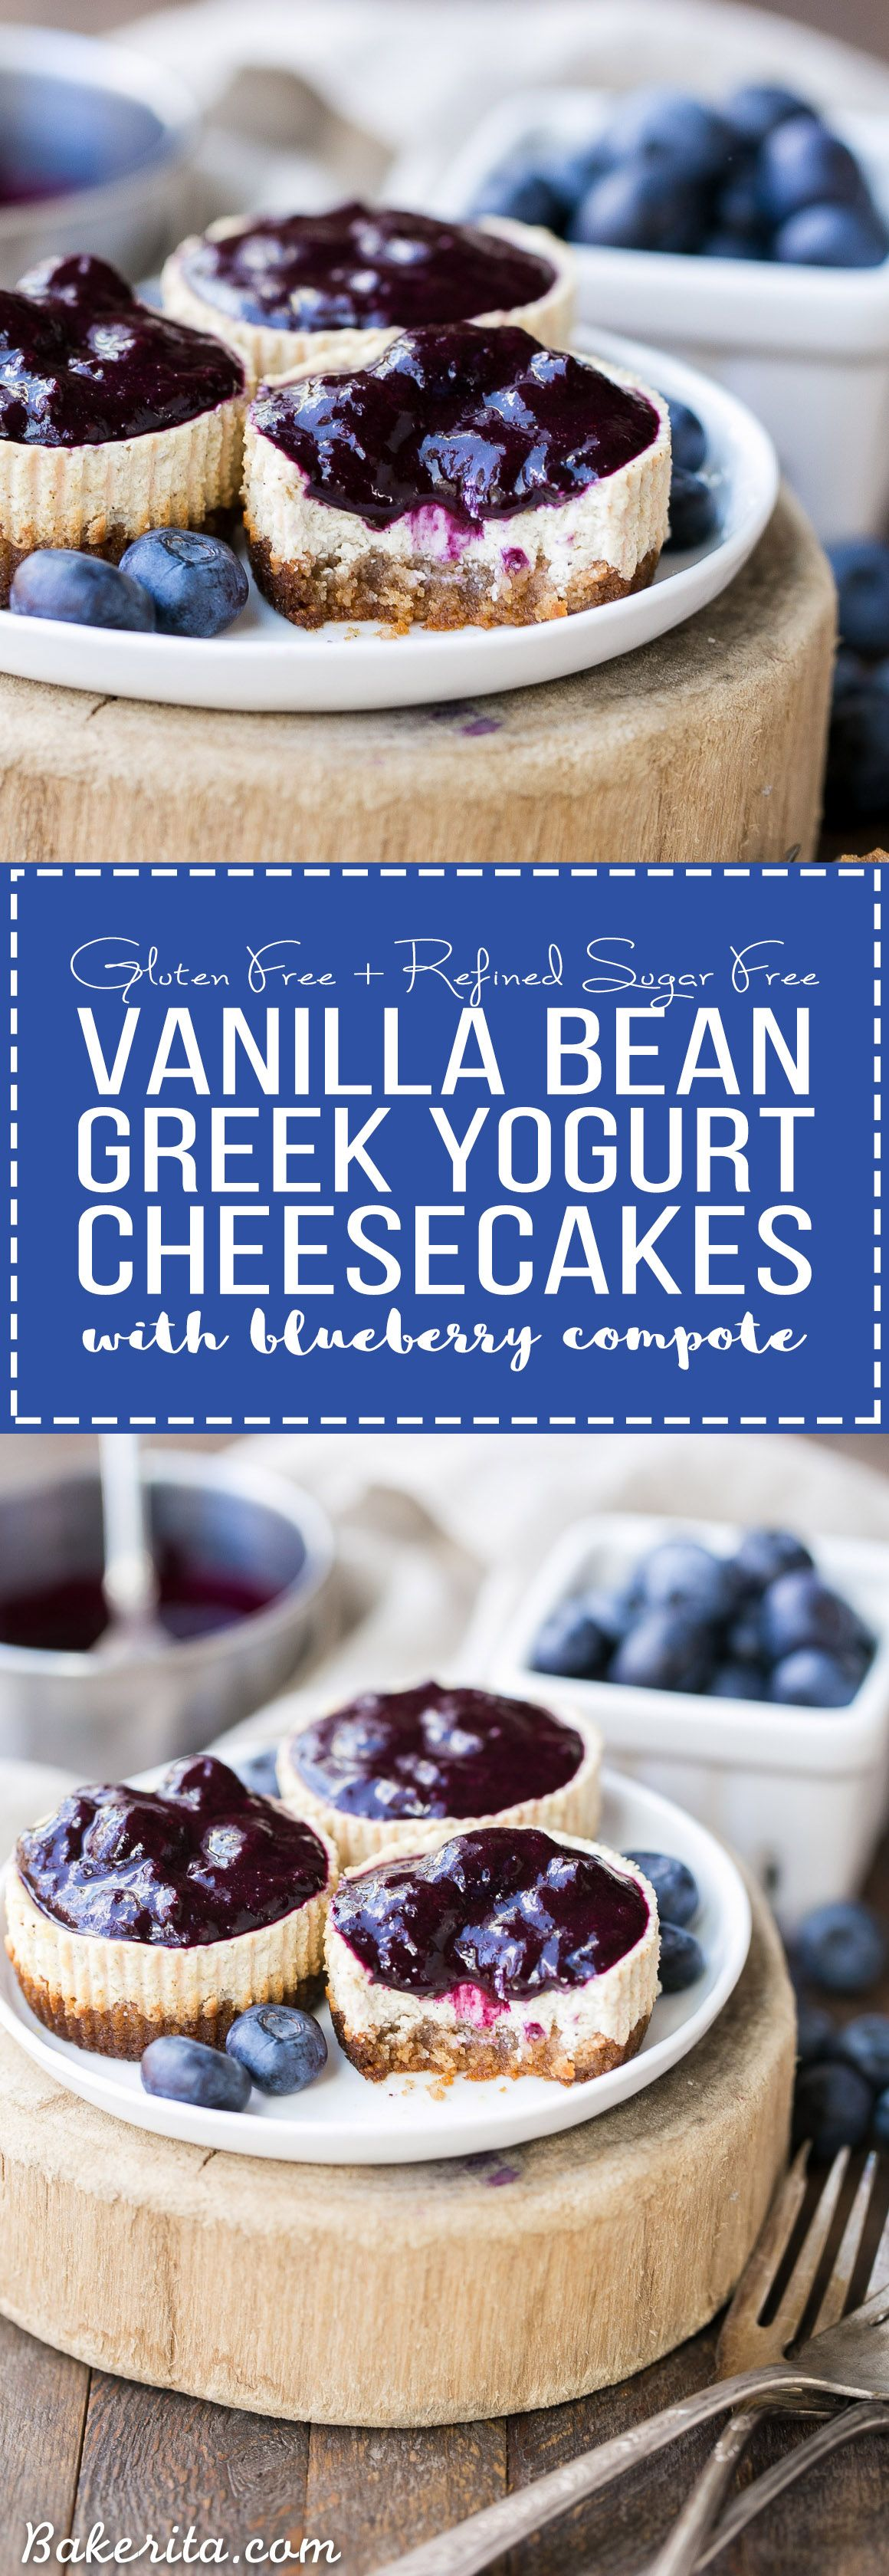 These Vanilla Bean Greek Yogurt Cheesecakes With Blueberry Compote Are Lightened Up But They Re